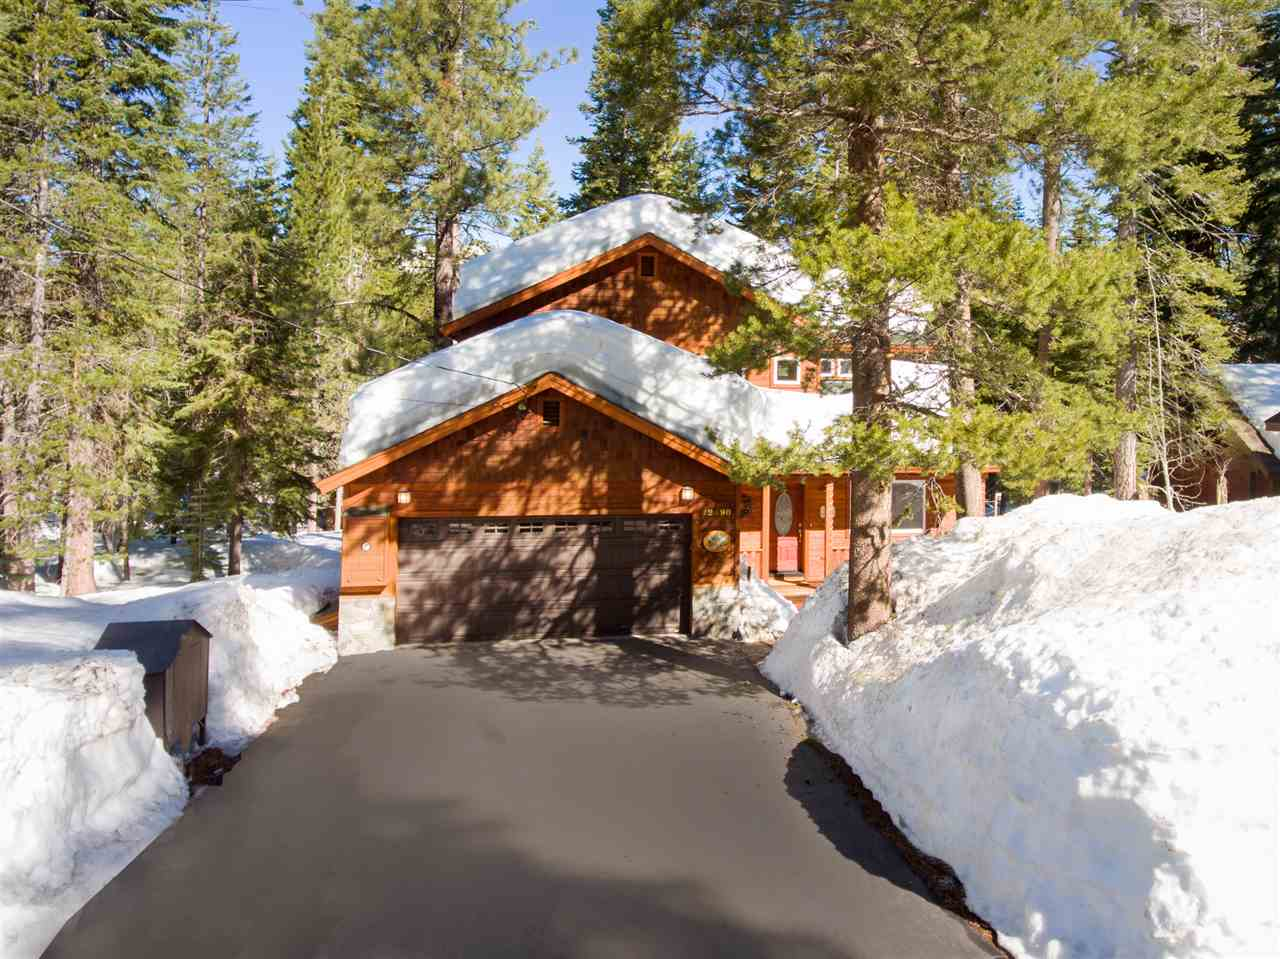 Single Family Home for Active at 12690 Saint Bernard Drive Truckee, California 96161 United States